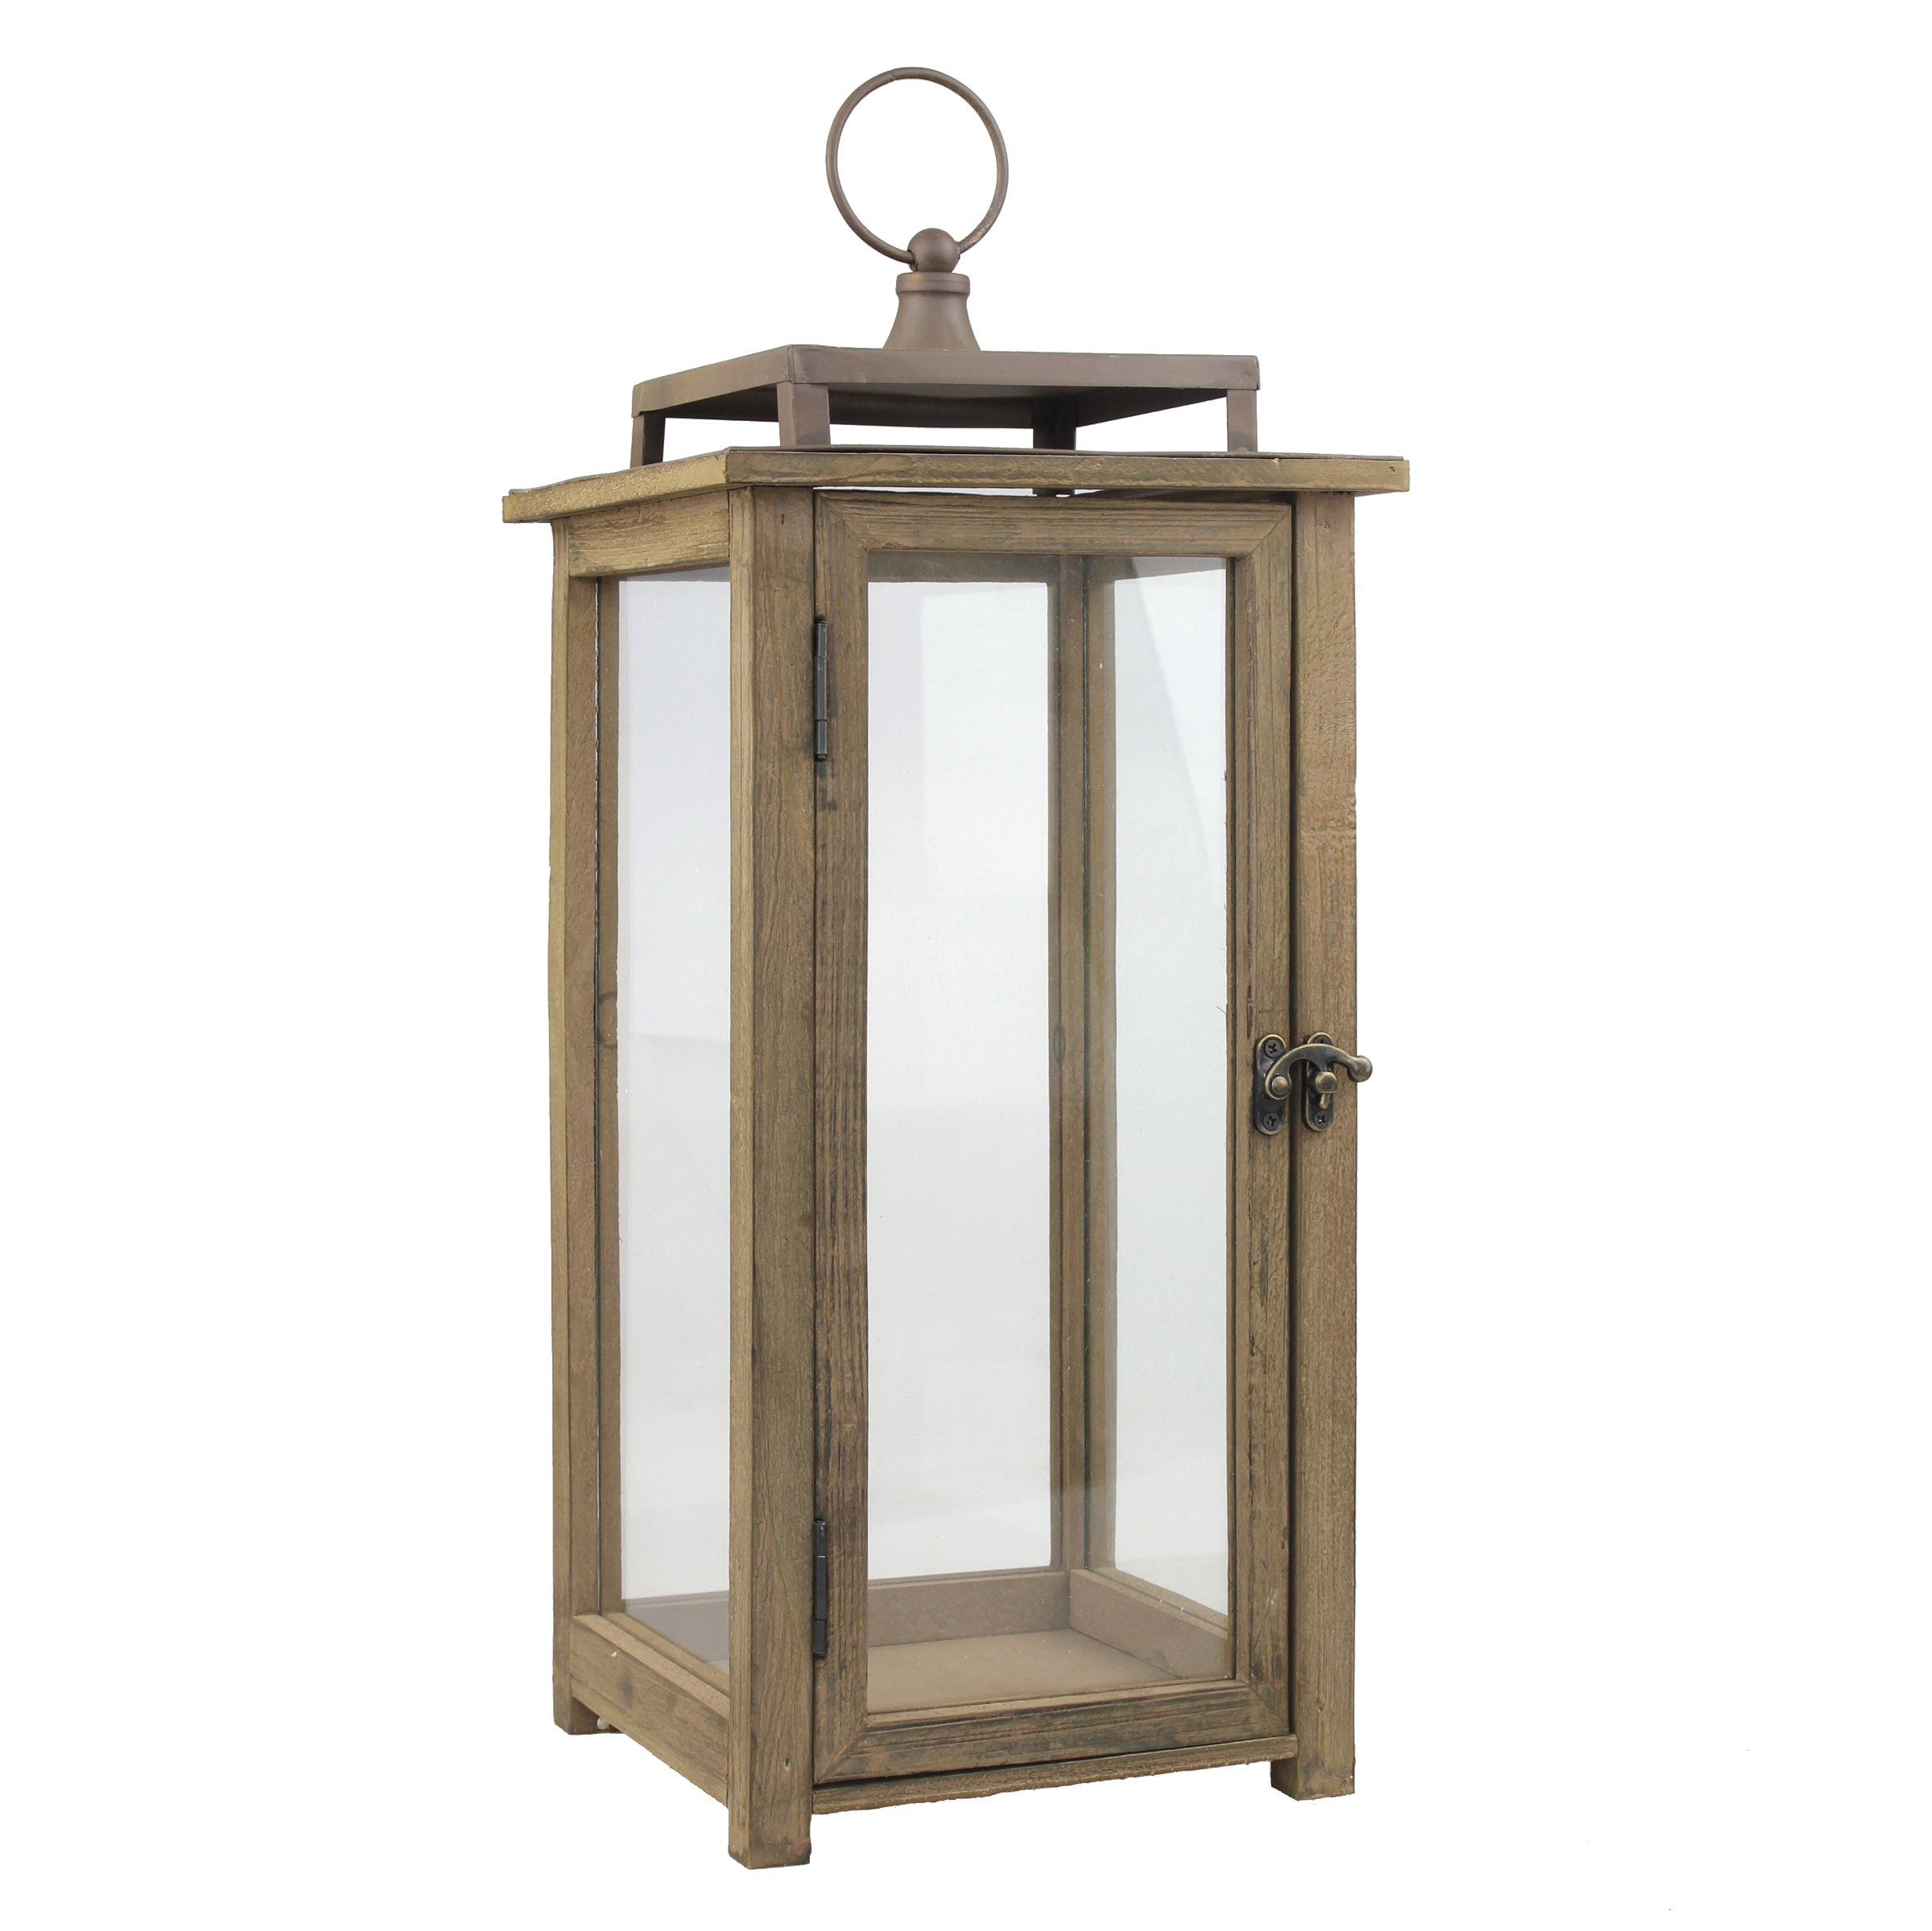 Stonebriar 18 Inch Rustic Wooden Candle Hurricane Lantern, For Table Top, Mantle, Wall Hanging, or Garden Display, Indoor & Outdoor Use, Large